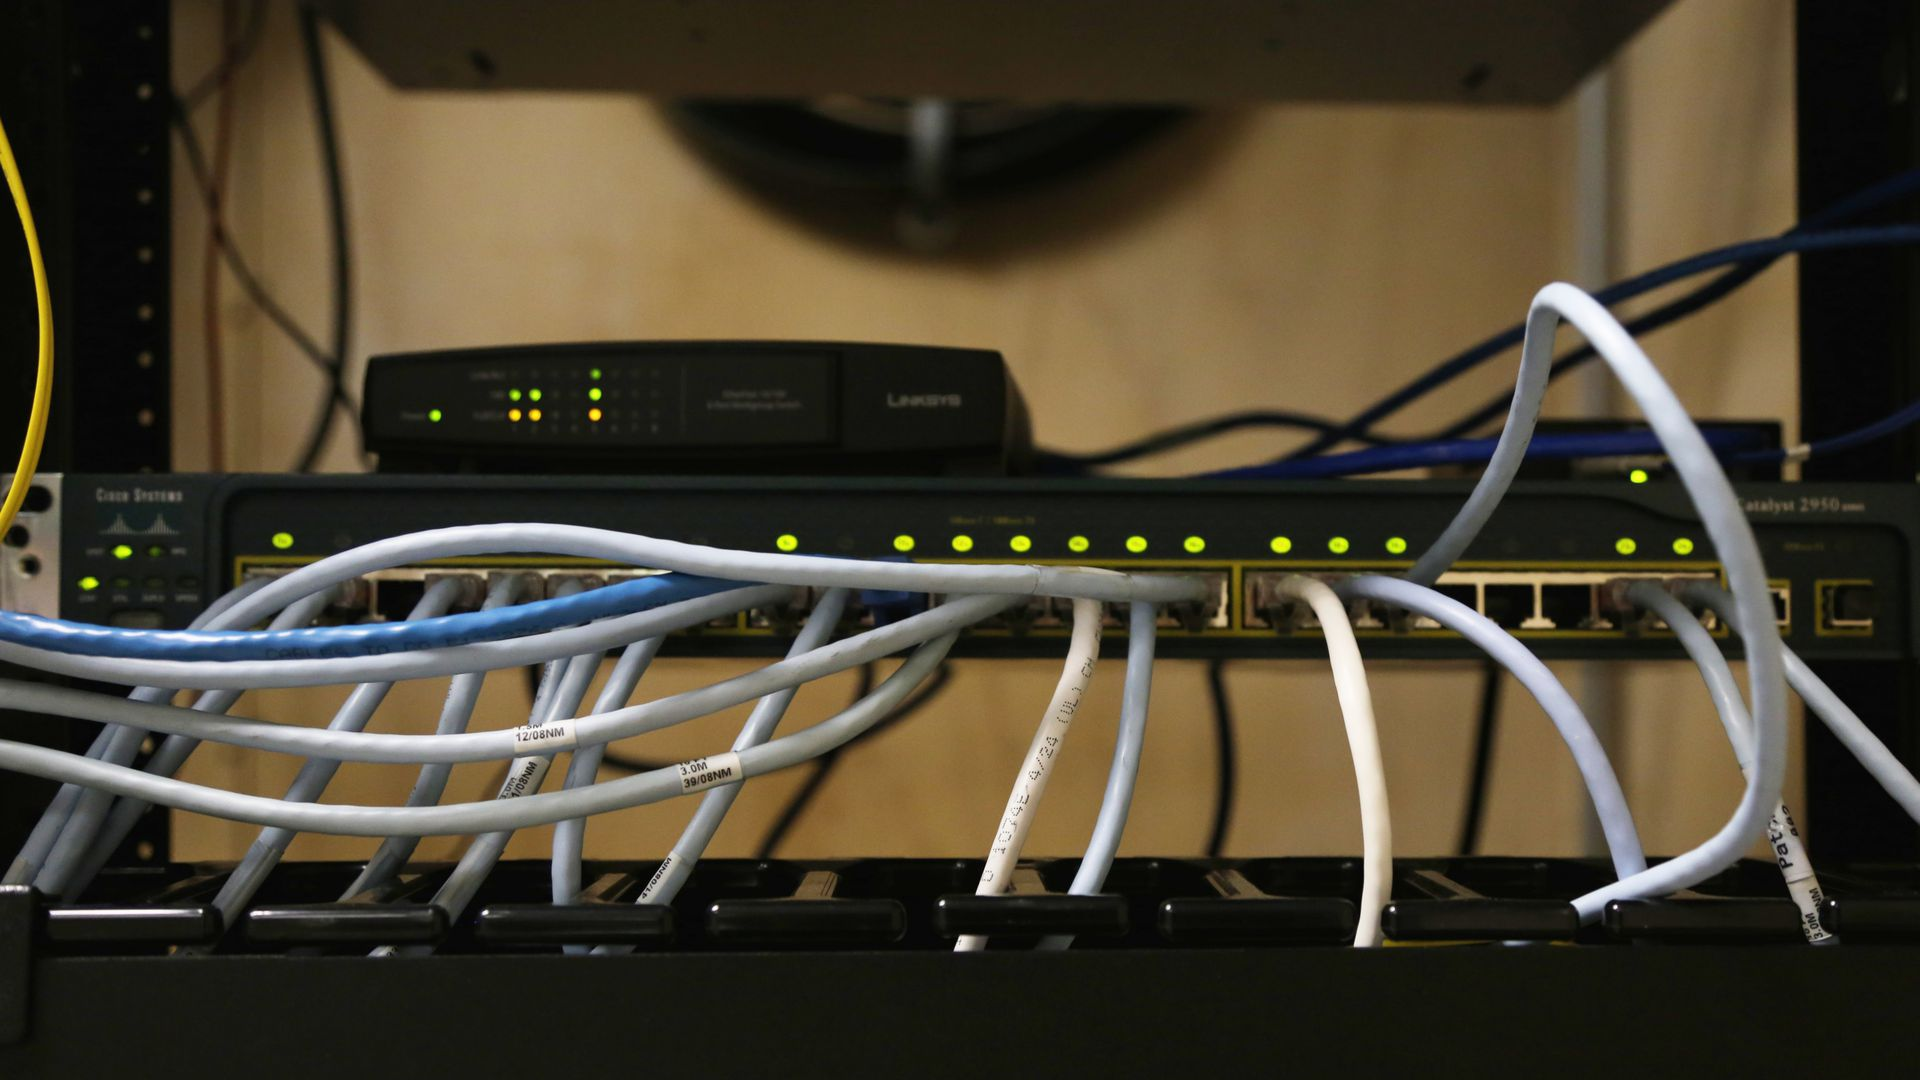 Cables and lights on a router.